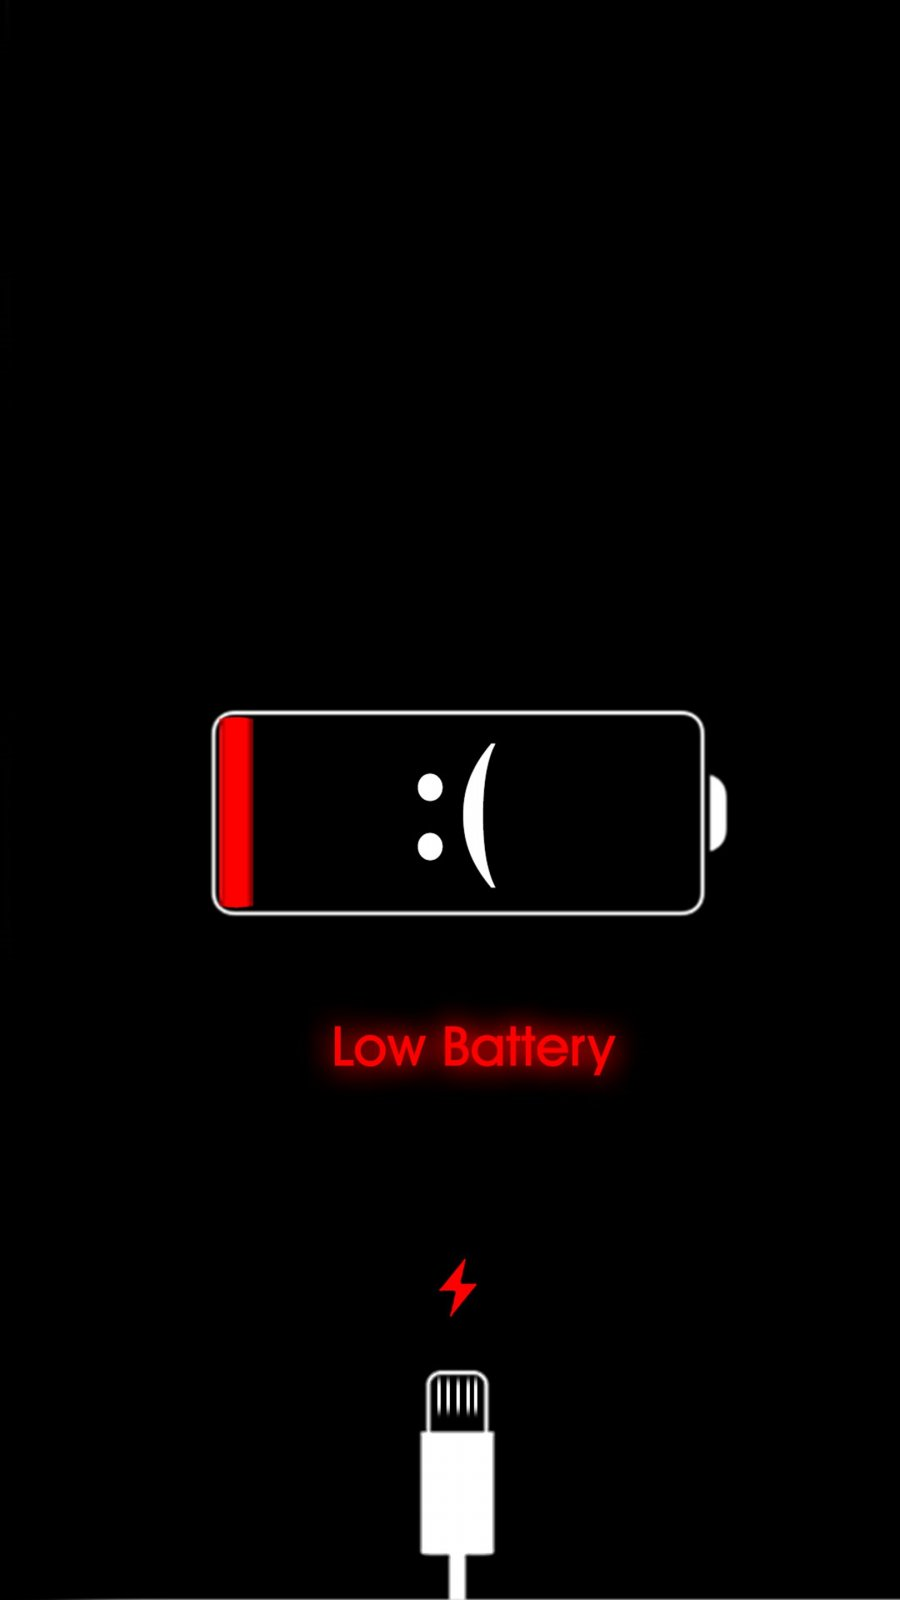 Low Battery iPhone Wallpaper 1